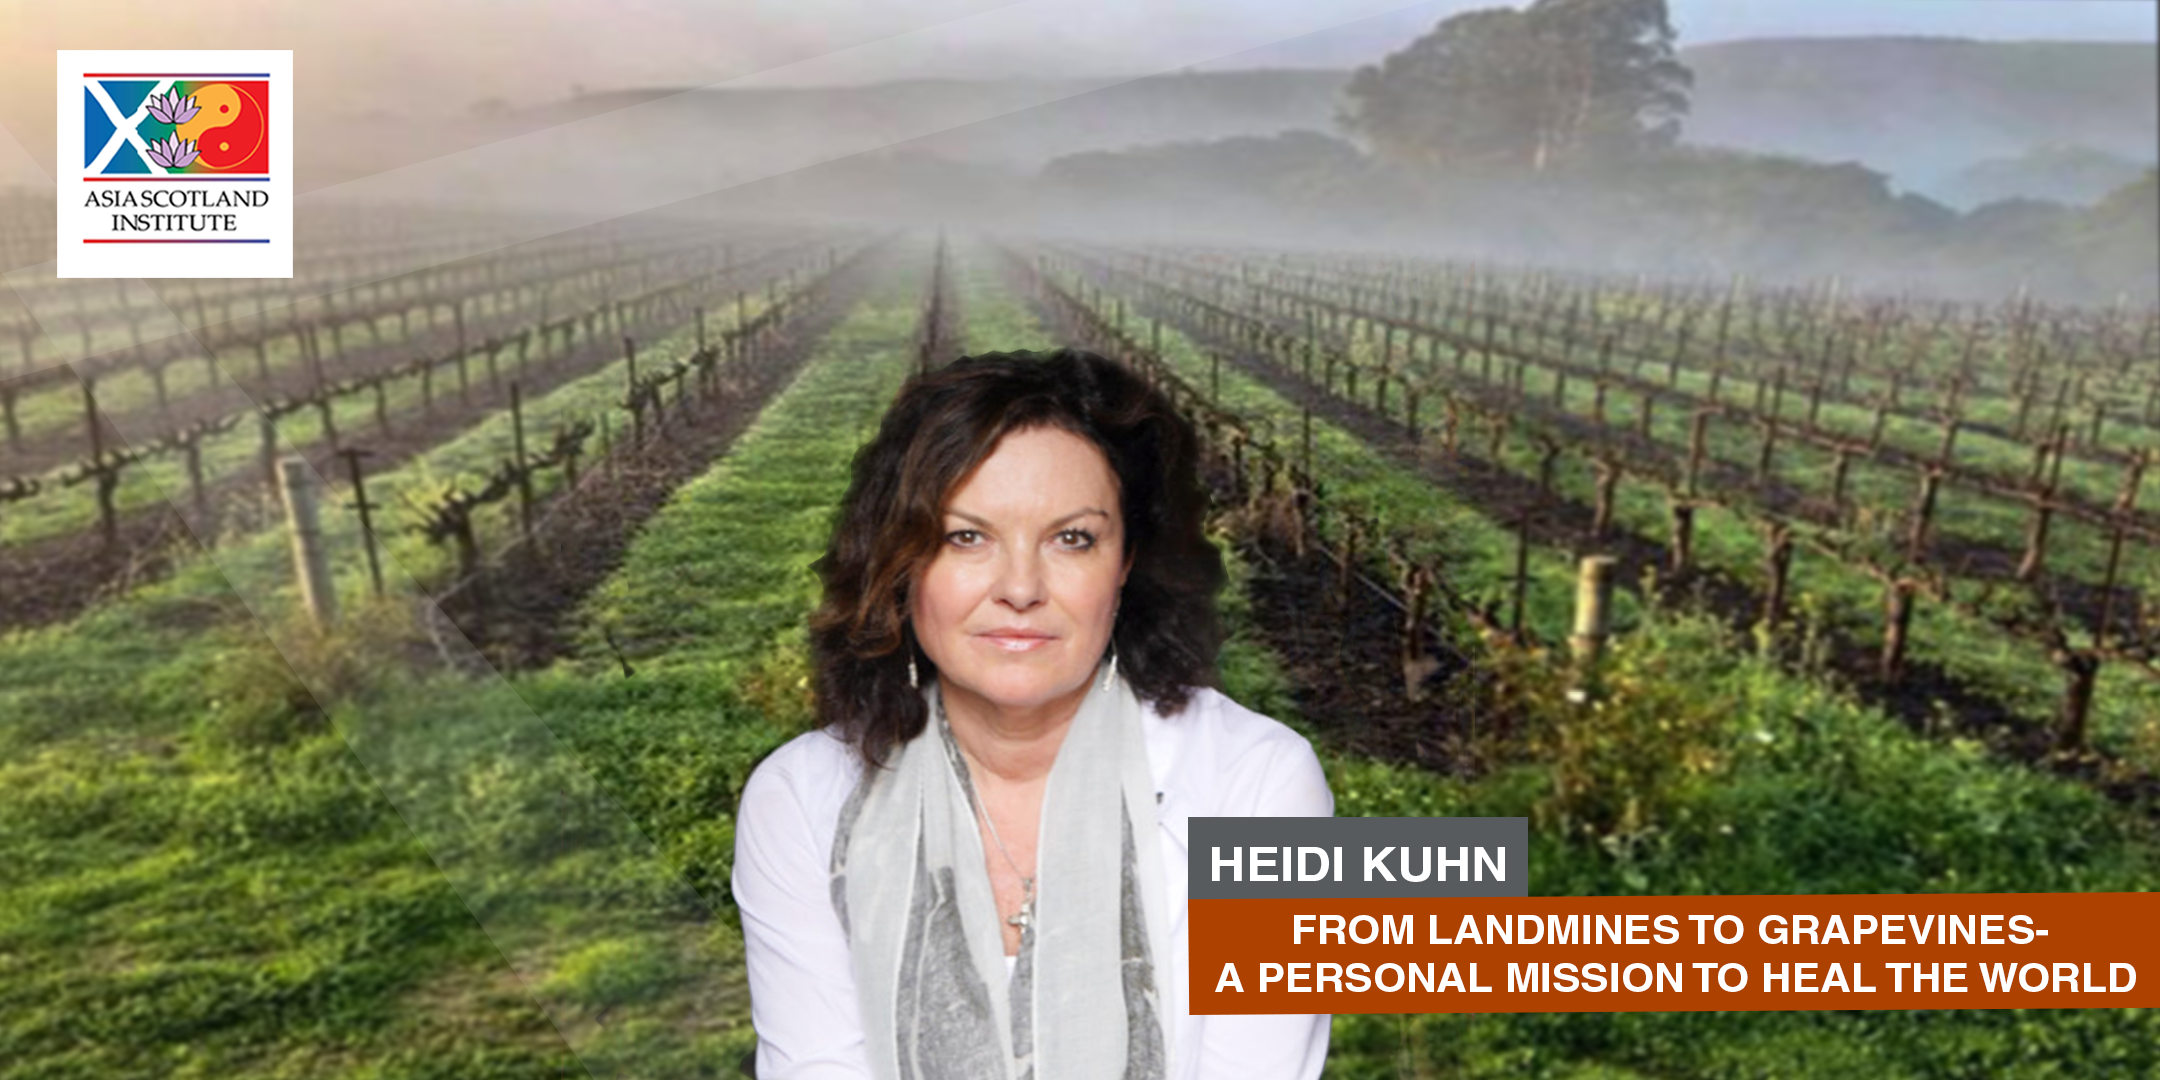 Heidi Kuhn - From Landmines to Grapevines